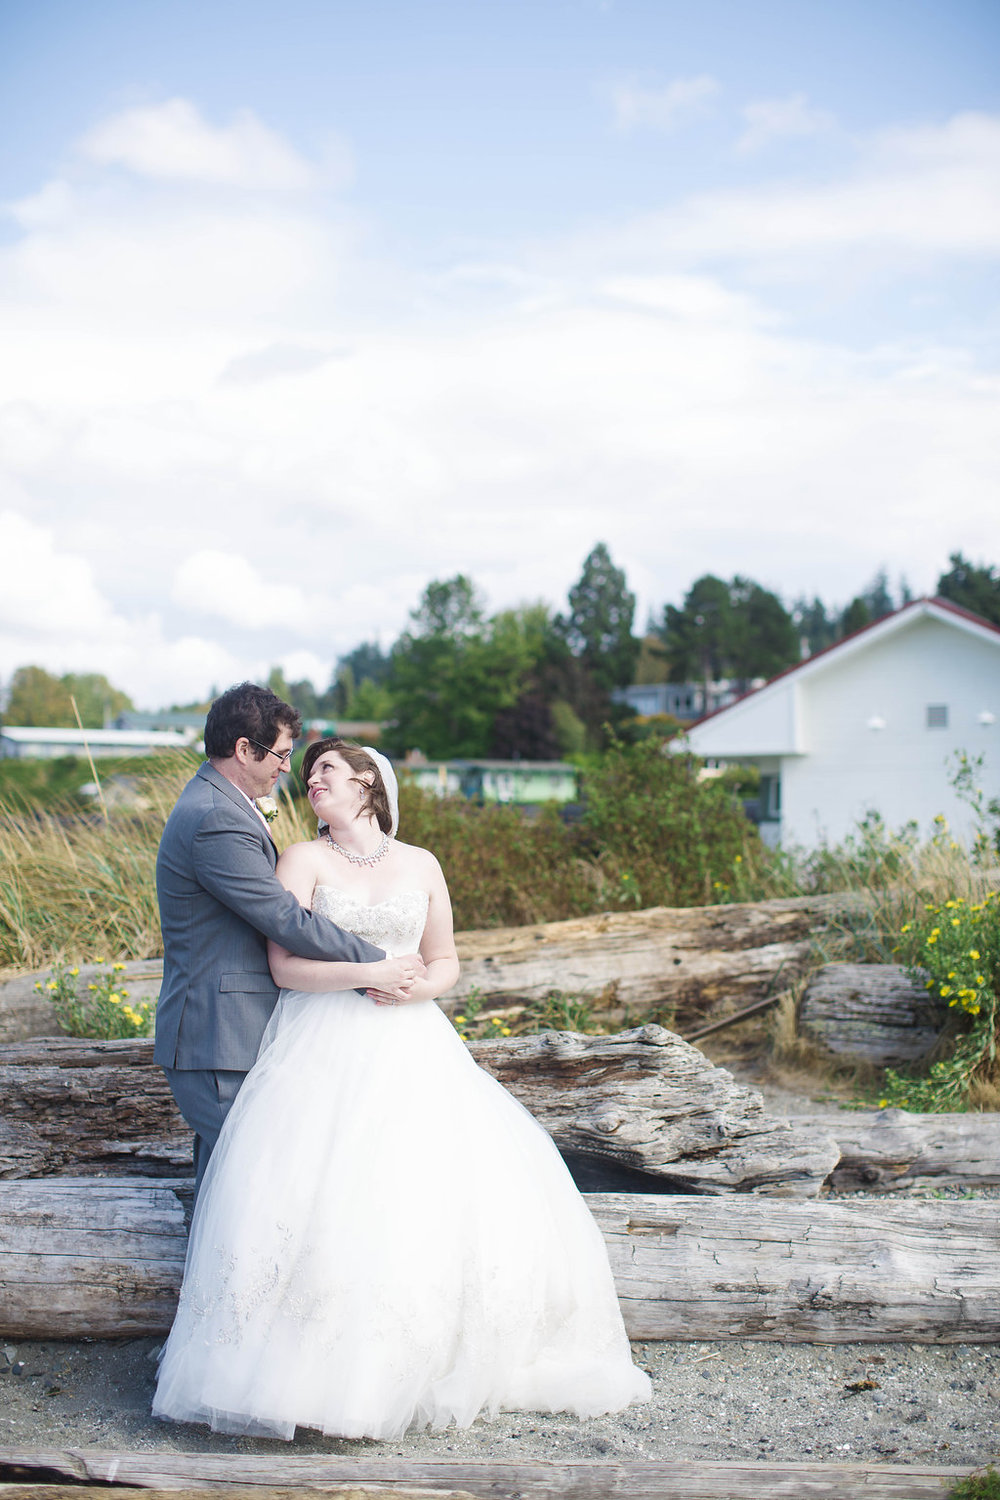 5-Heather+Sean-JustThem129.jpg